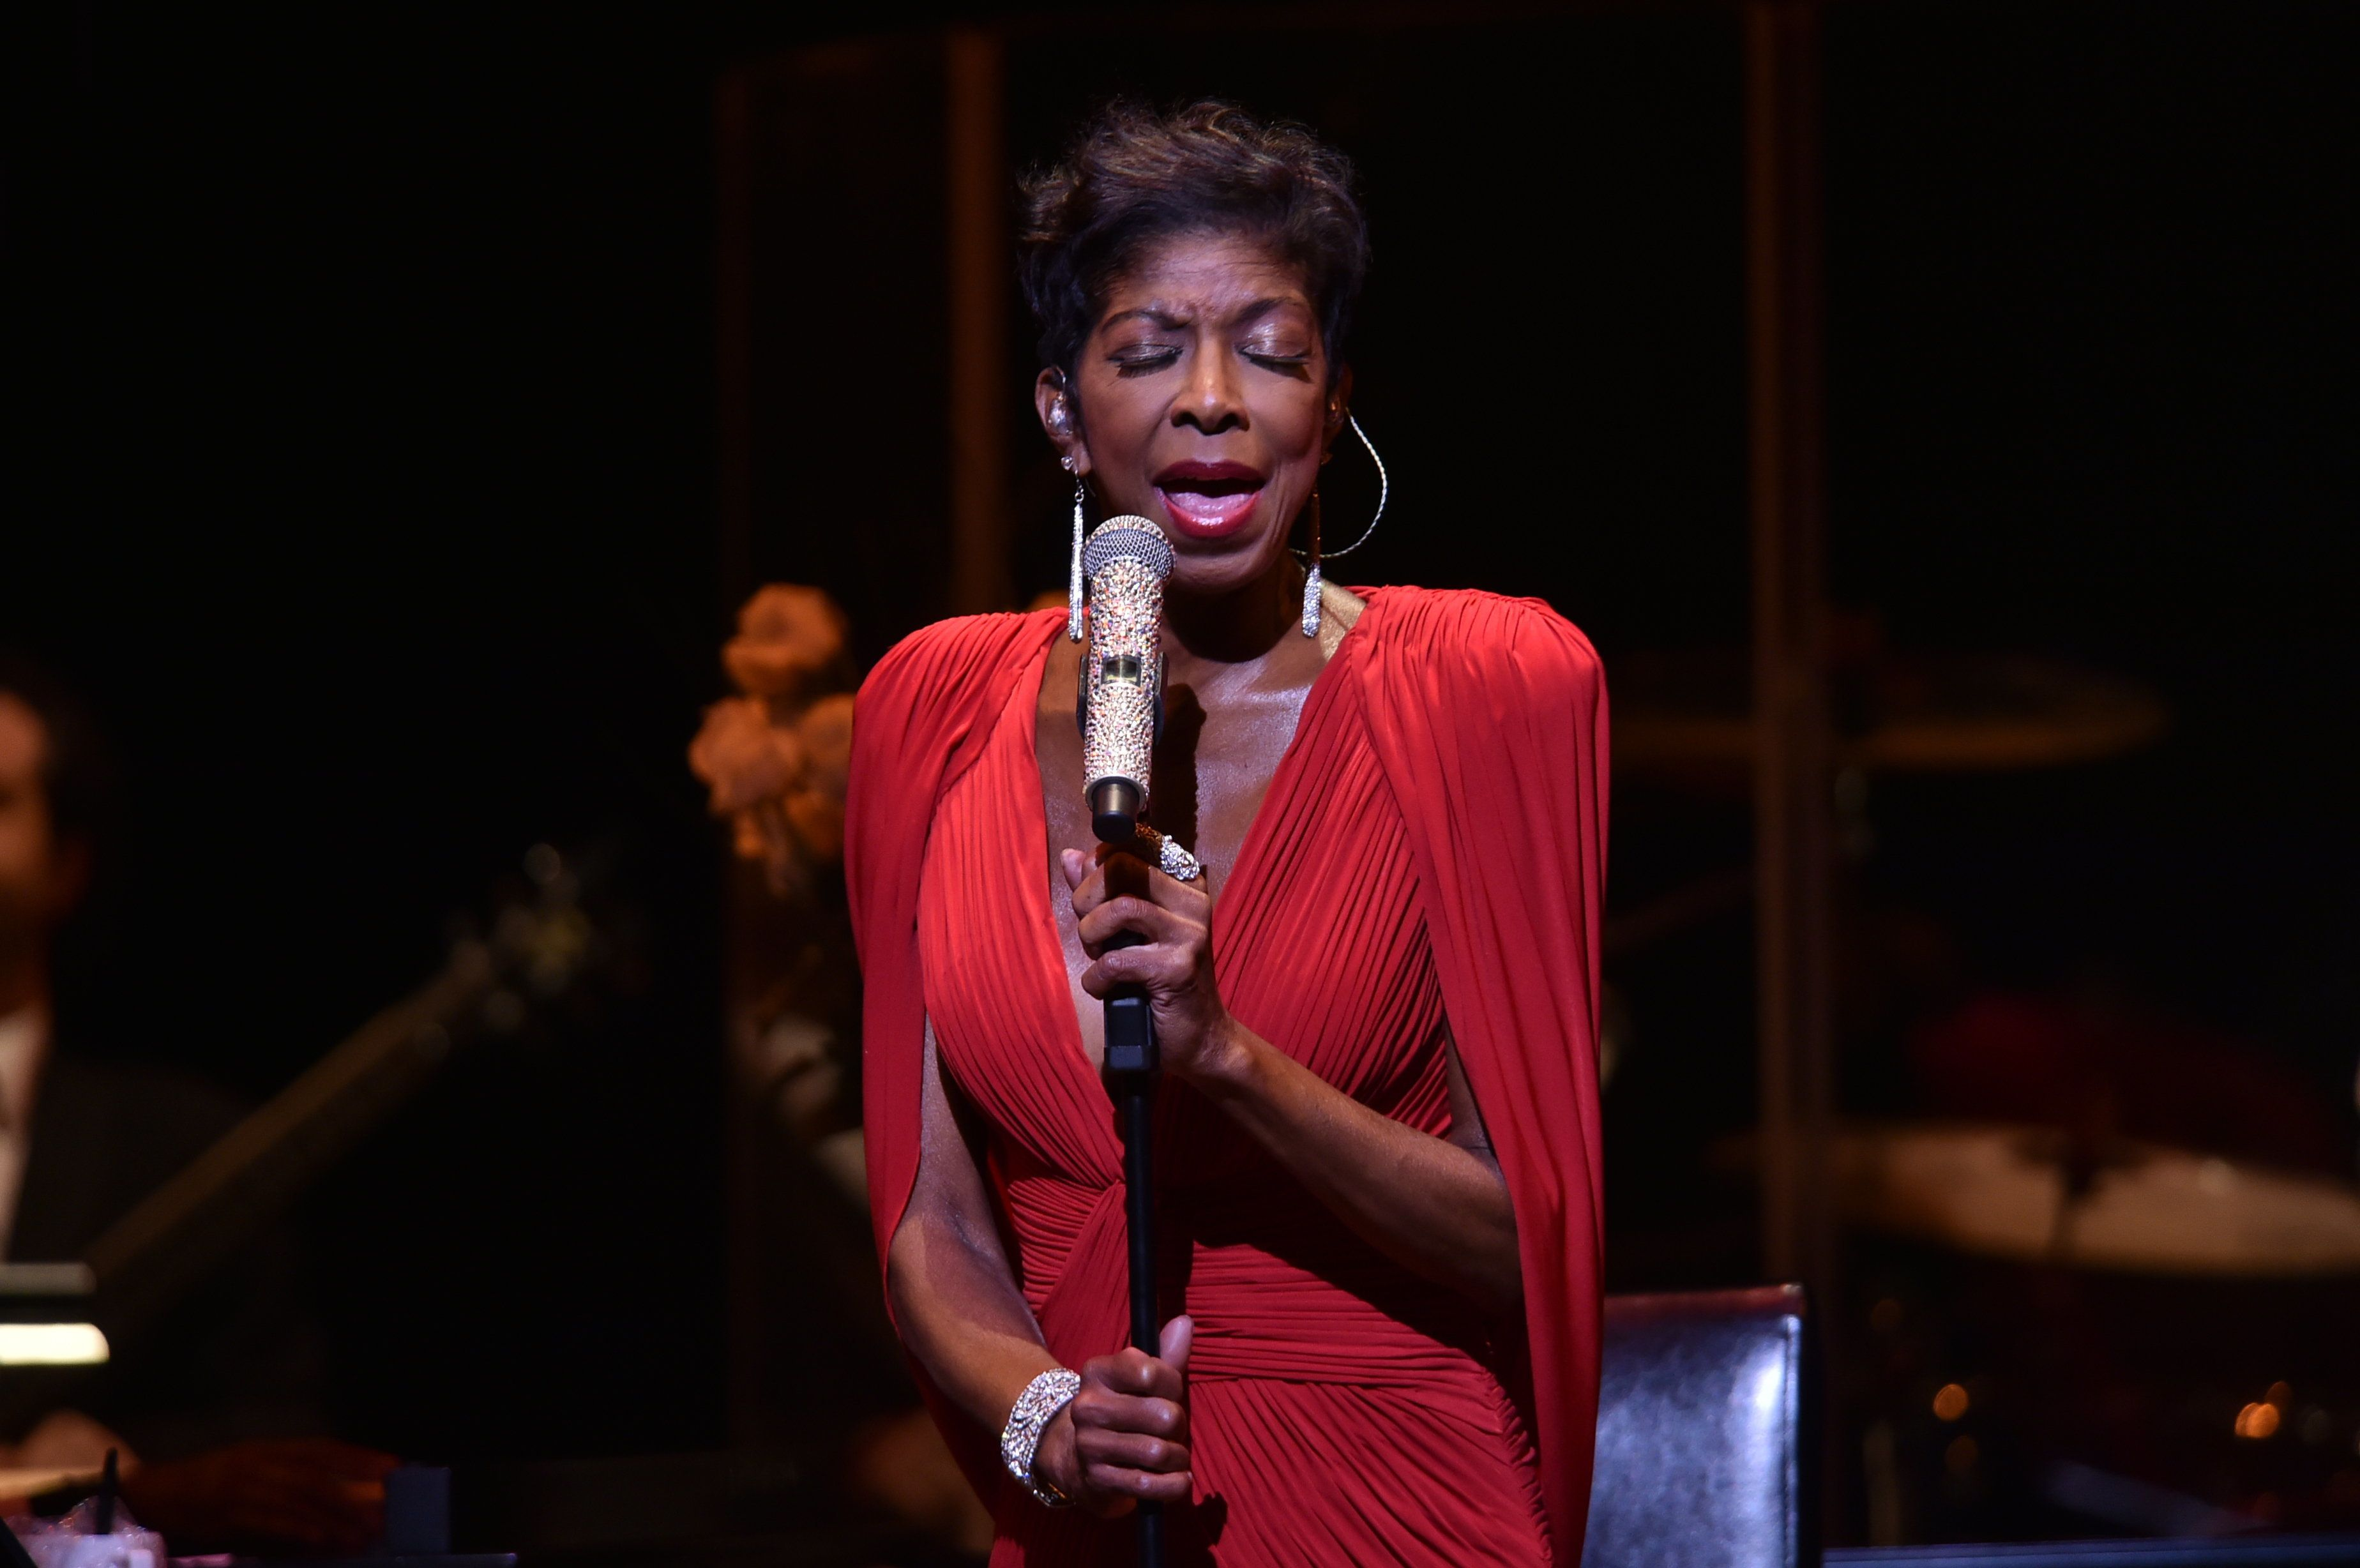 ATLANTA, GA - JUNE 26:  Recording Artist Natalie Cole performs atJazz 91.9 WCLK 41st Anniversary Benefit Concert at Cobb Energy Performing Arts Center on June 26, 2015 in Atlanta, Georgia.  (Photo by Moses Robinson/Getty Images)